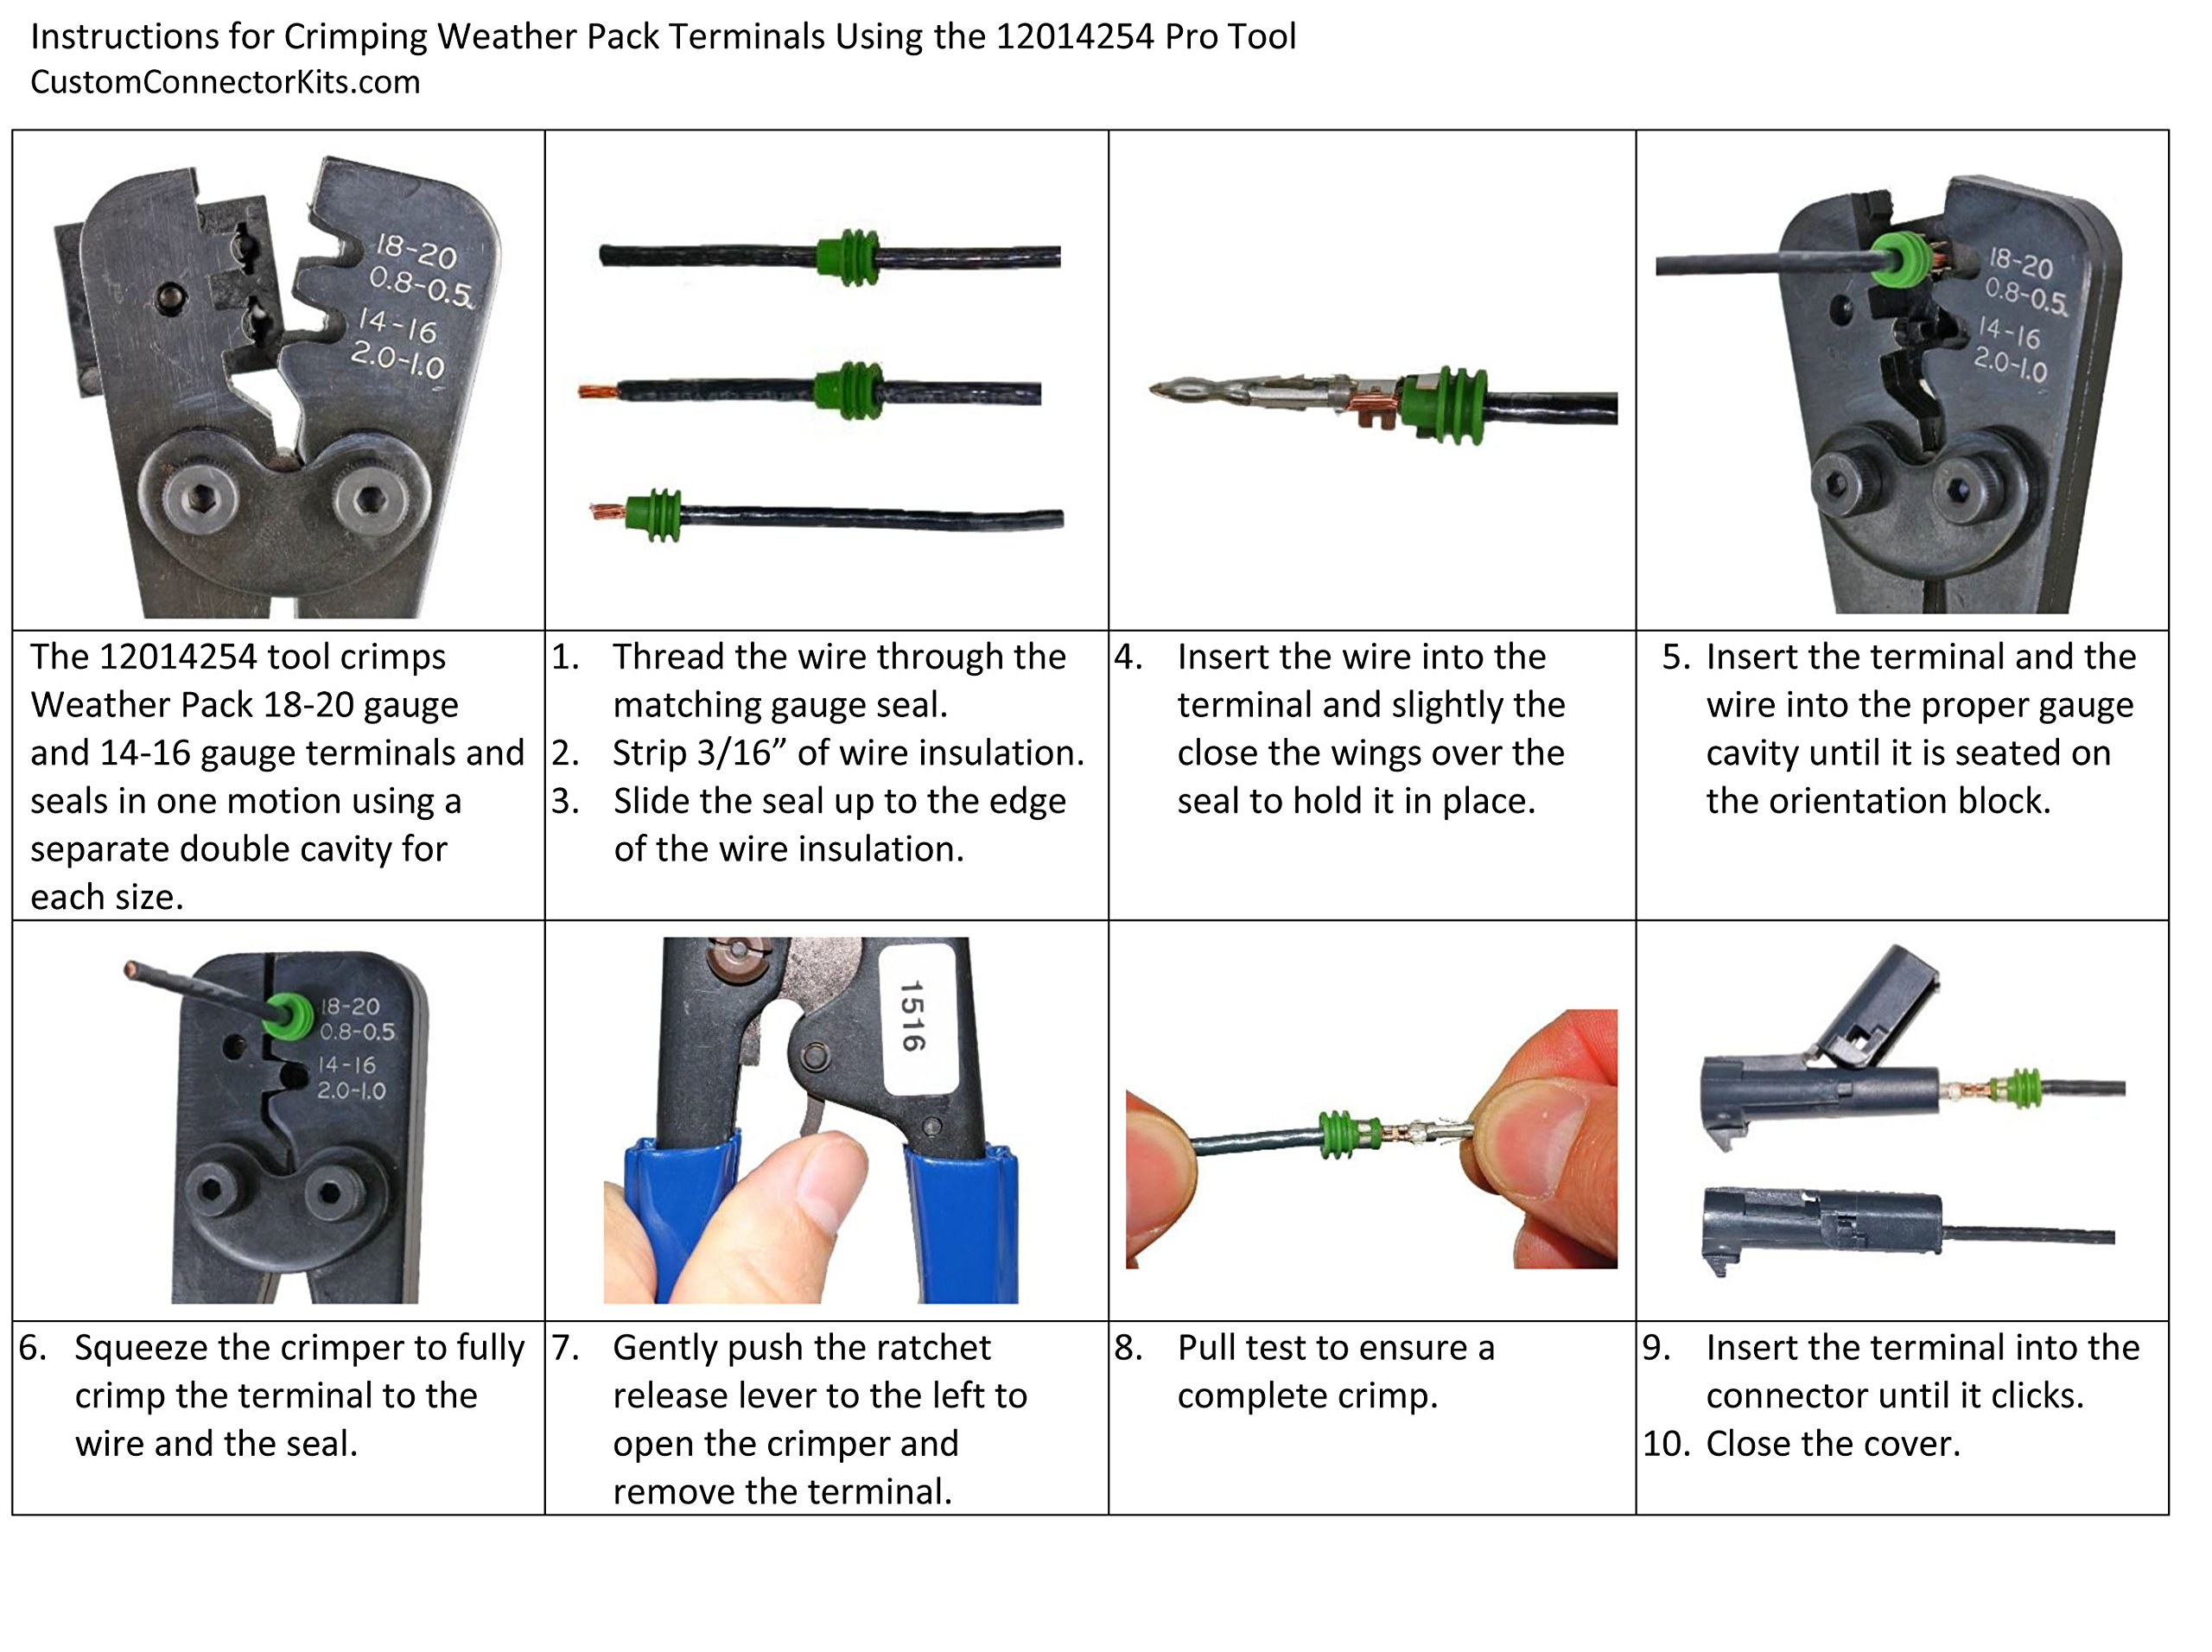 Delphi Weather Pack Connector Kit WP-155 With Pro Tool: Sealed Weatherproof Automotive Electrical Connectors 20-12 Gauge 155 Piece Kit With 12014254 Pro Crimp Tool by DELPHIKITS (Image #5)